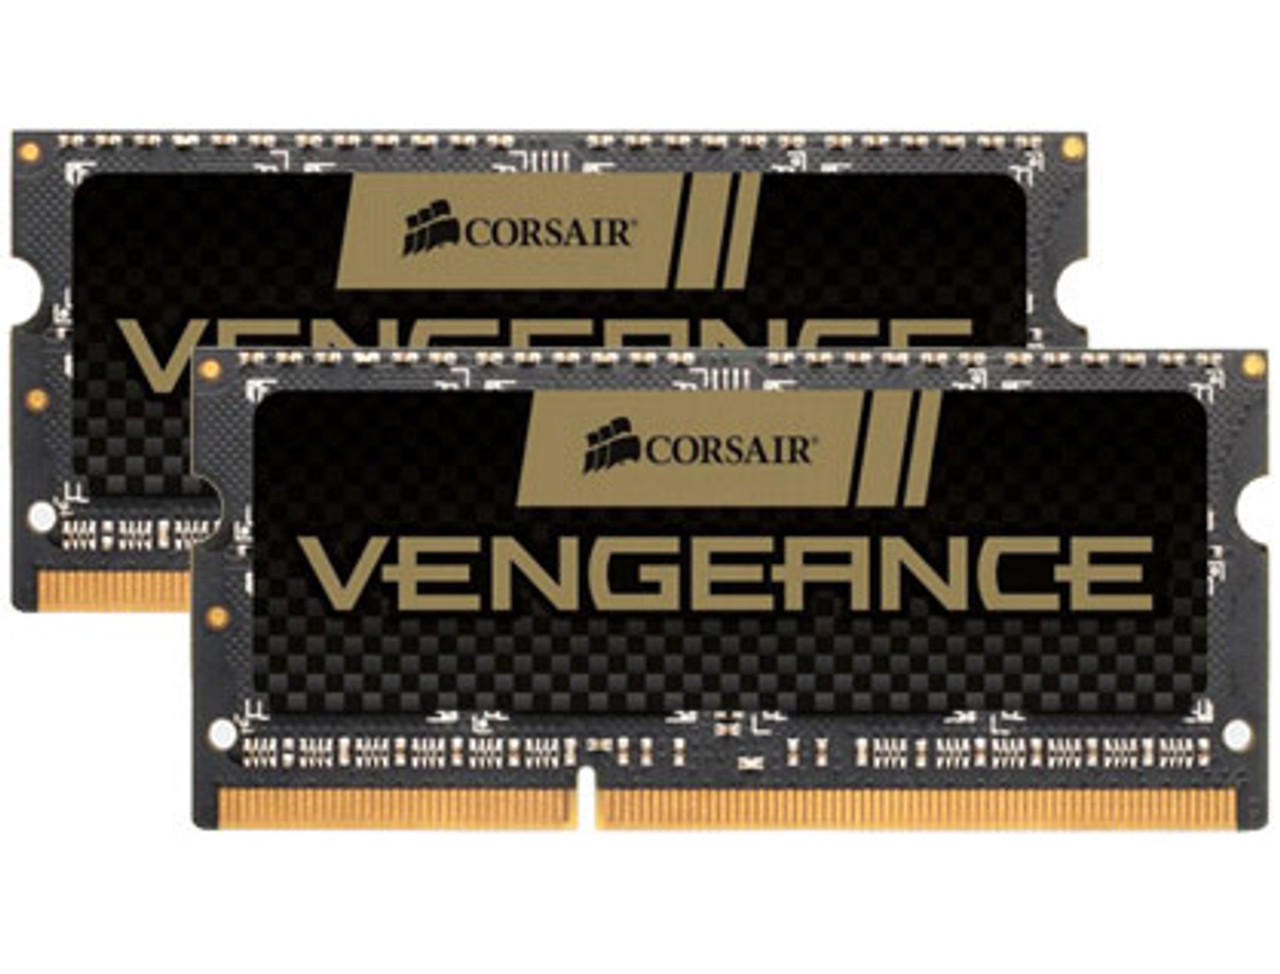 Image for Corsair Vengeance 16GB (2x 8GB) DDR3 1600MHz SODIMM Memory CX Computer Superstore